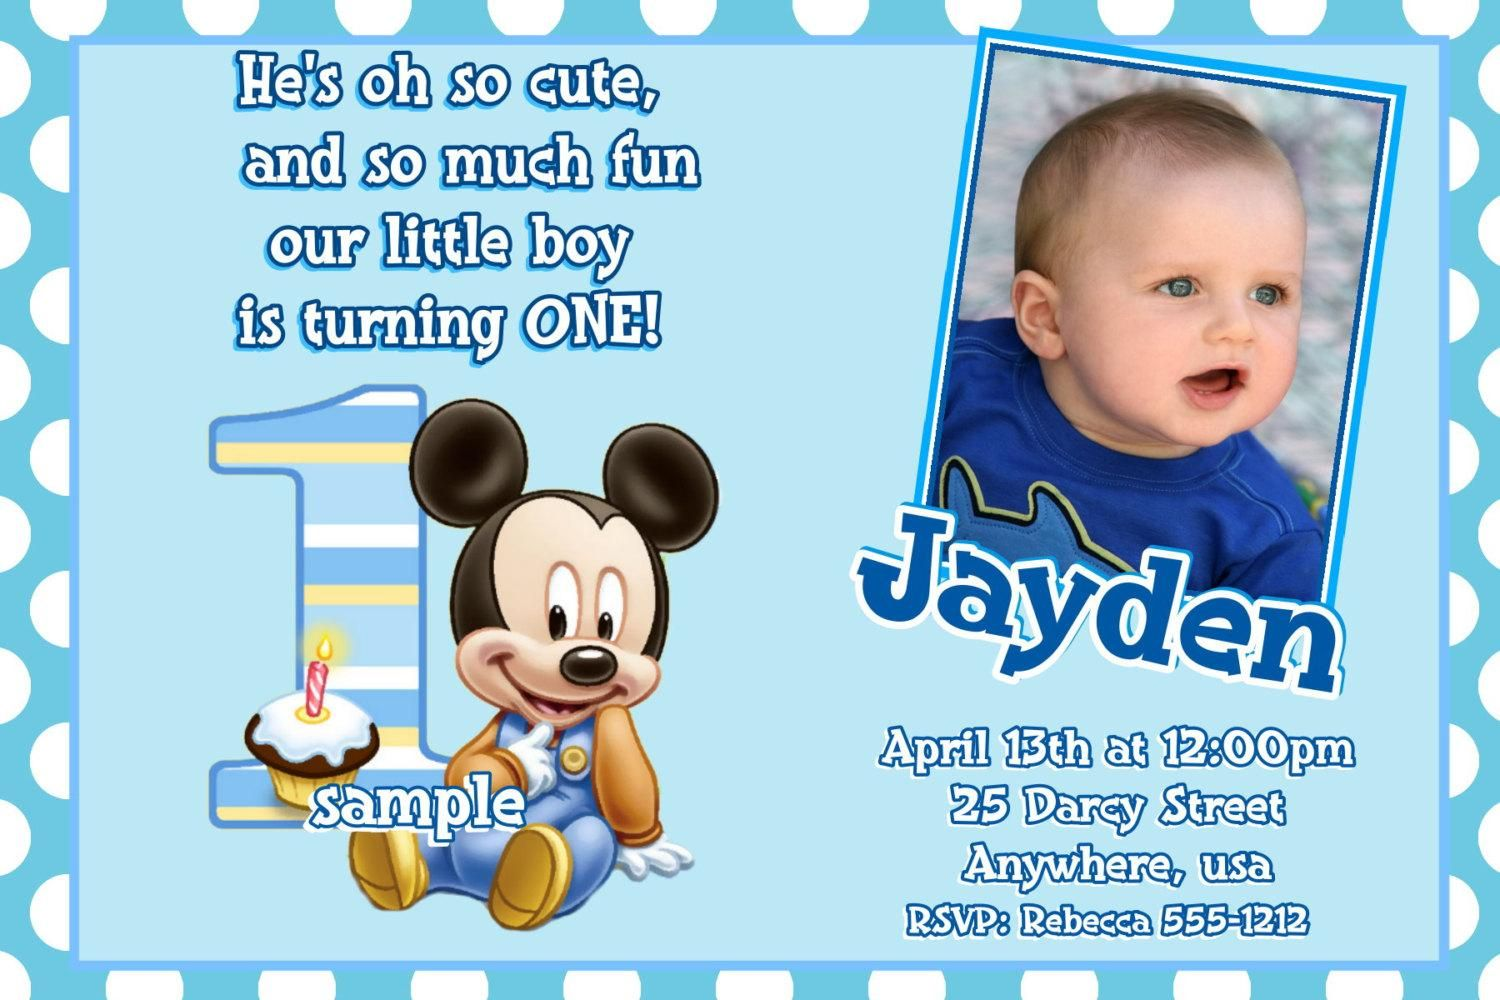 The First Birthday Invitations Boy With Outstanding Appearance First 1st Birthday Invitations Boy Mickey Mouse Birthday Invitations Boy Birthday Invitations